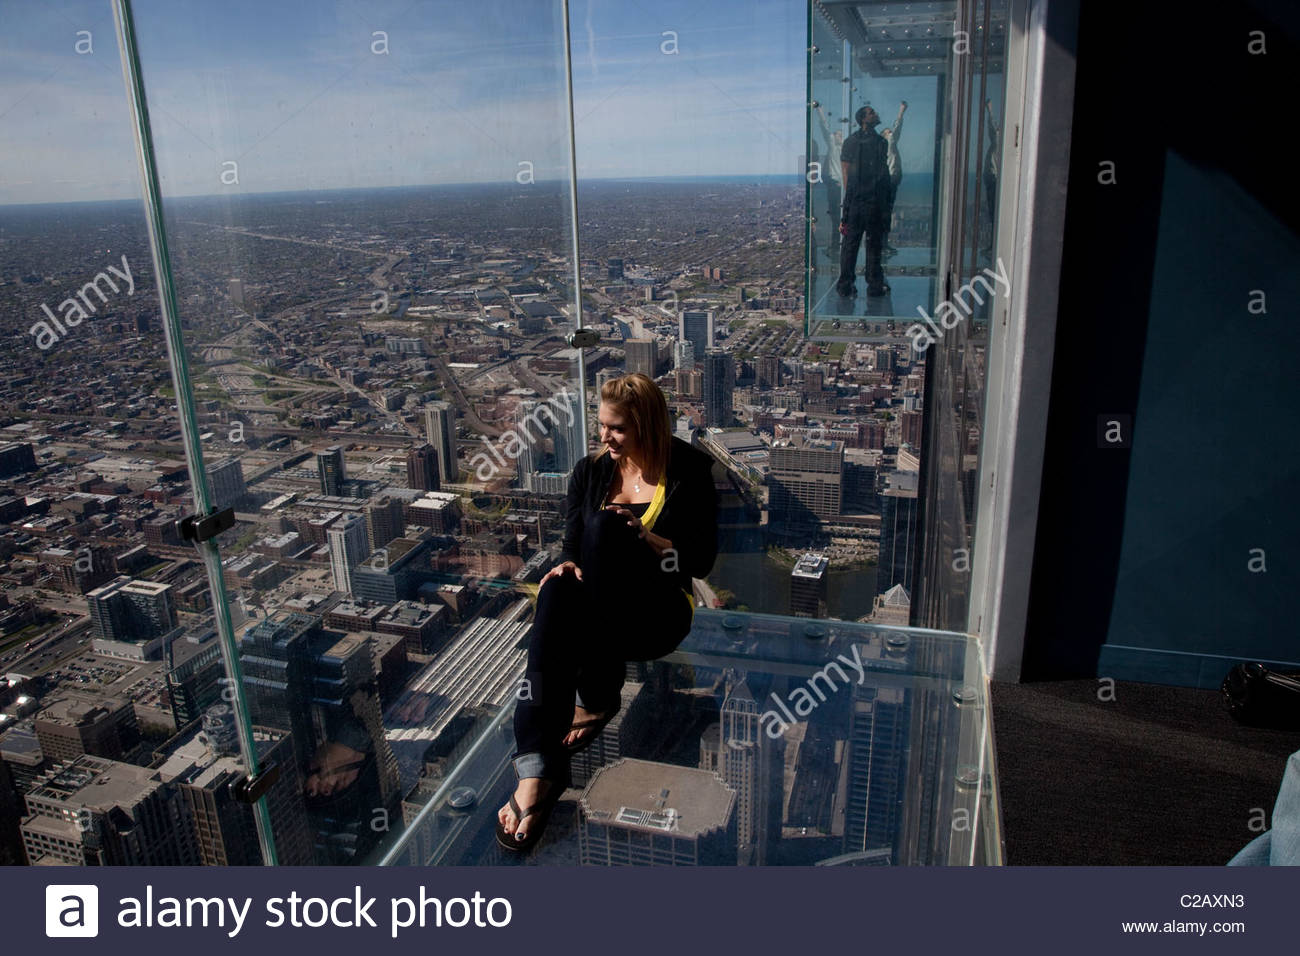 A view from the 103 floor of Willis Tower or the old Sears Tower. - Stock Image